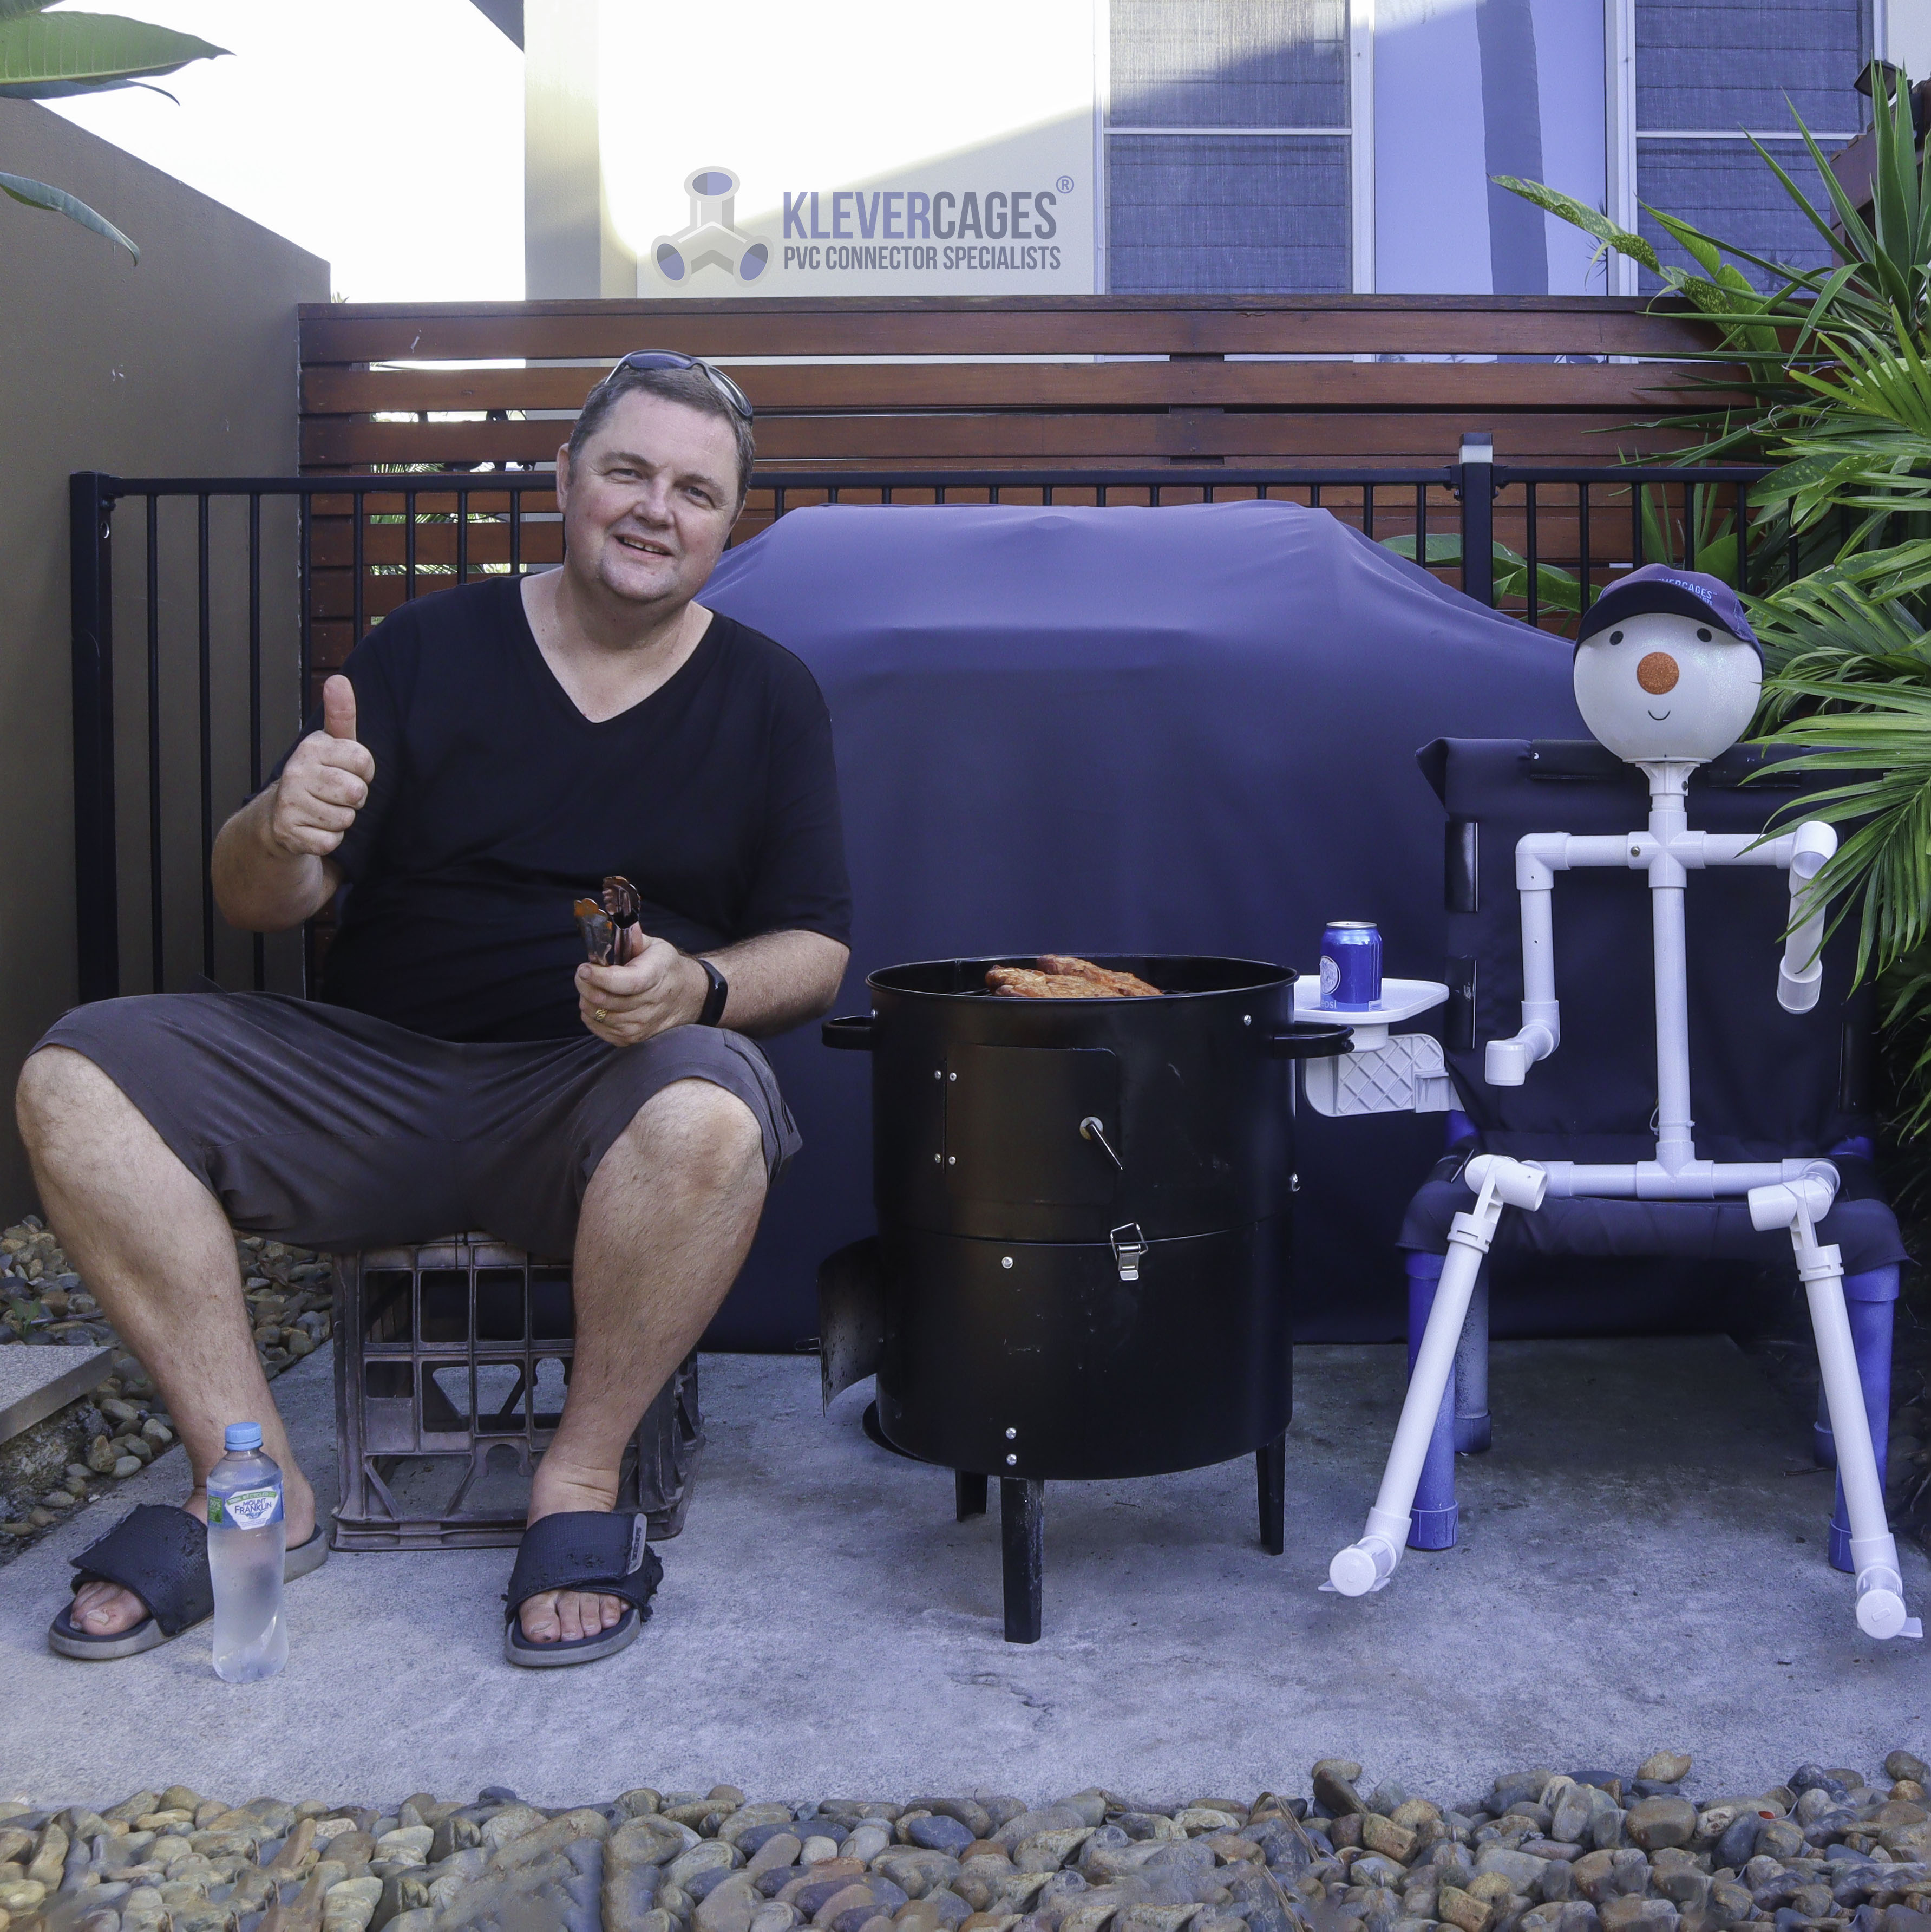 Connector Cam (PVC pipe person) and I sitting by the BBQ cooking dinner and having a chat. Connector Cam is built from PVC fittings and PVC pipe from Klever Cages